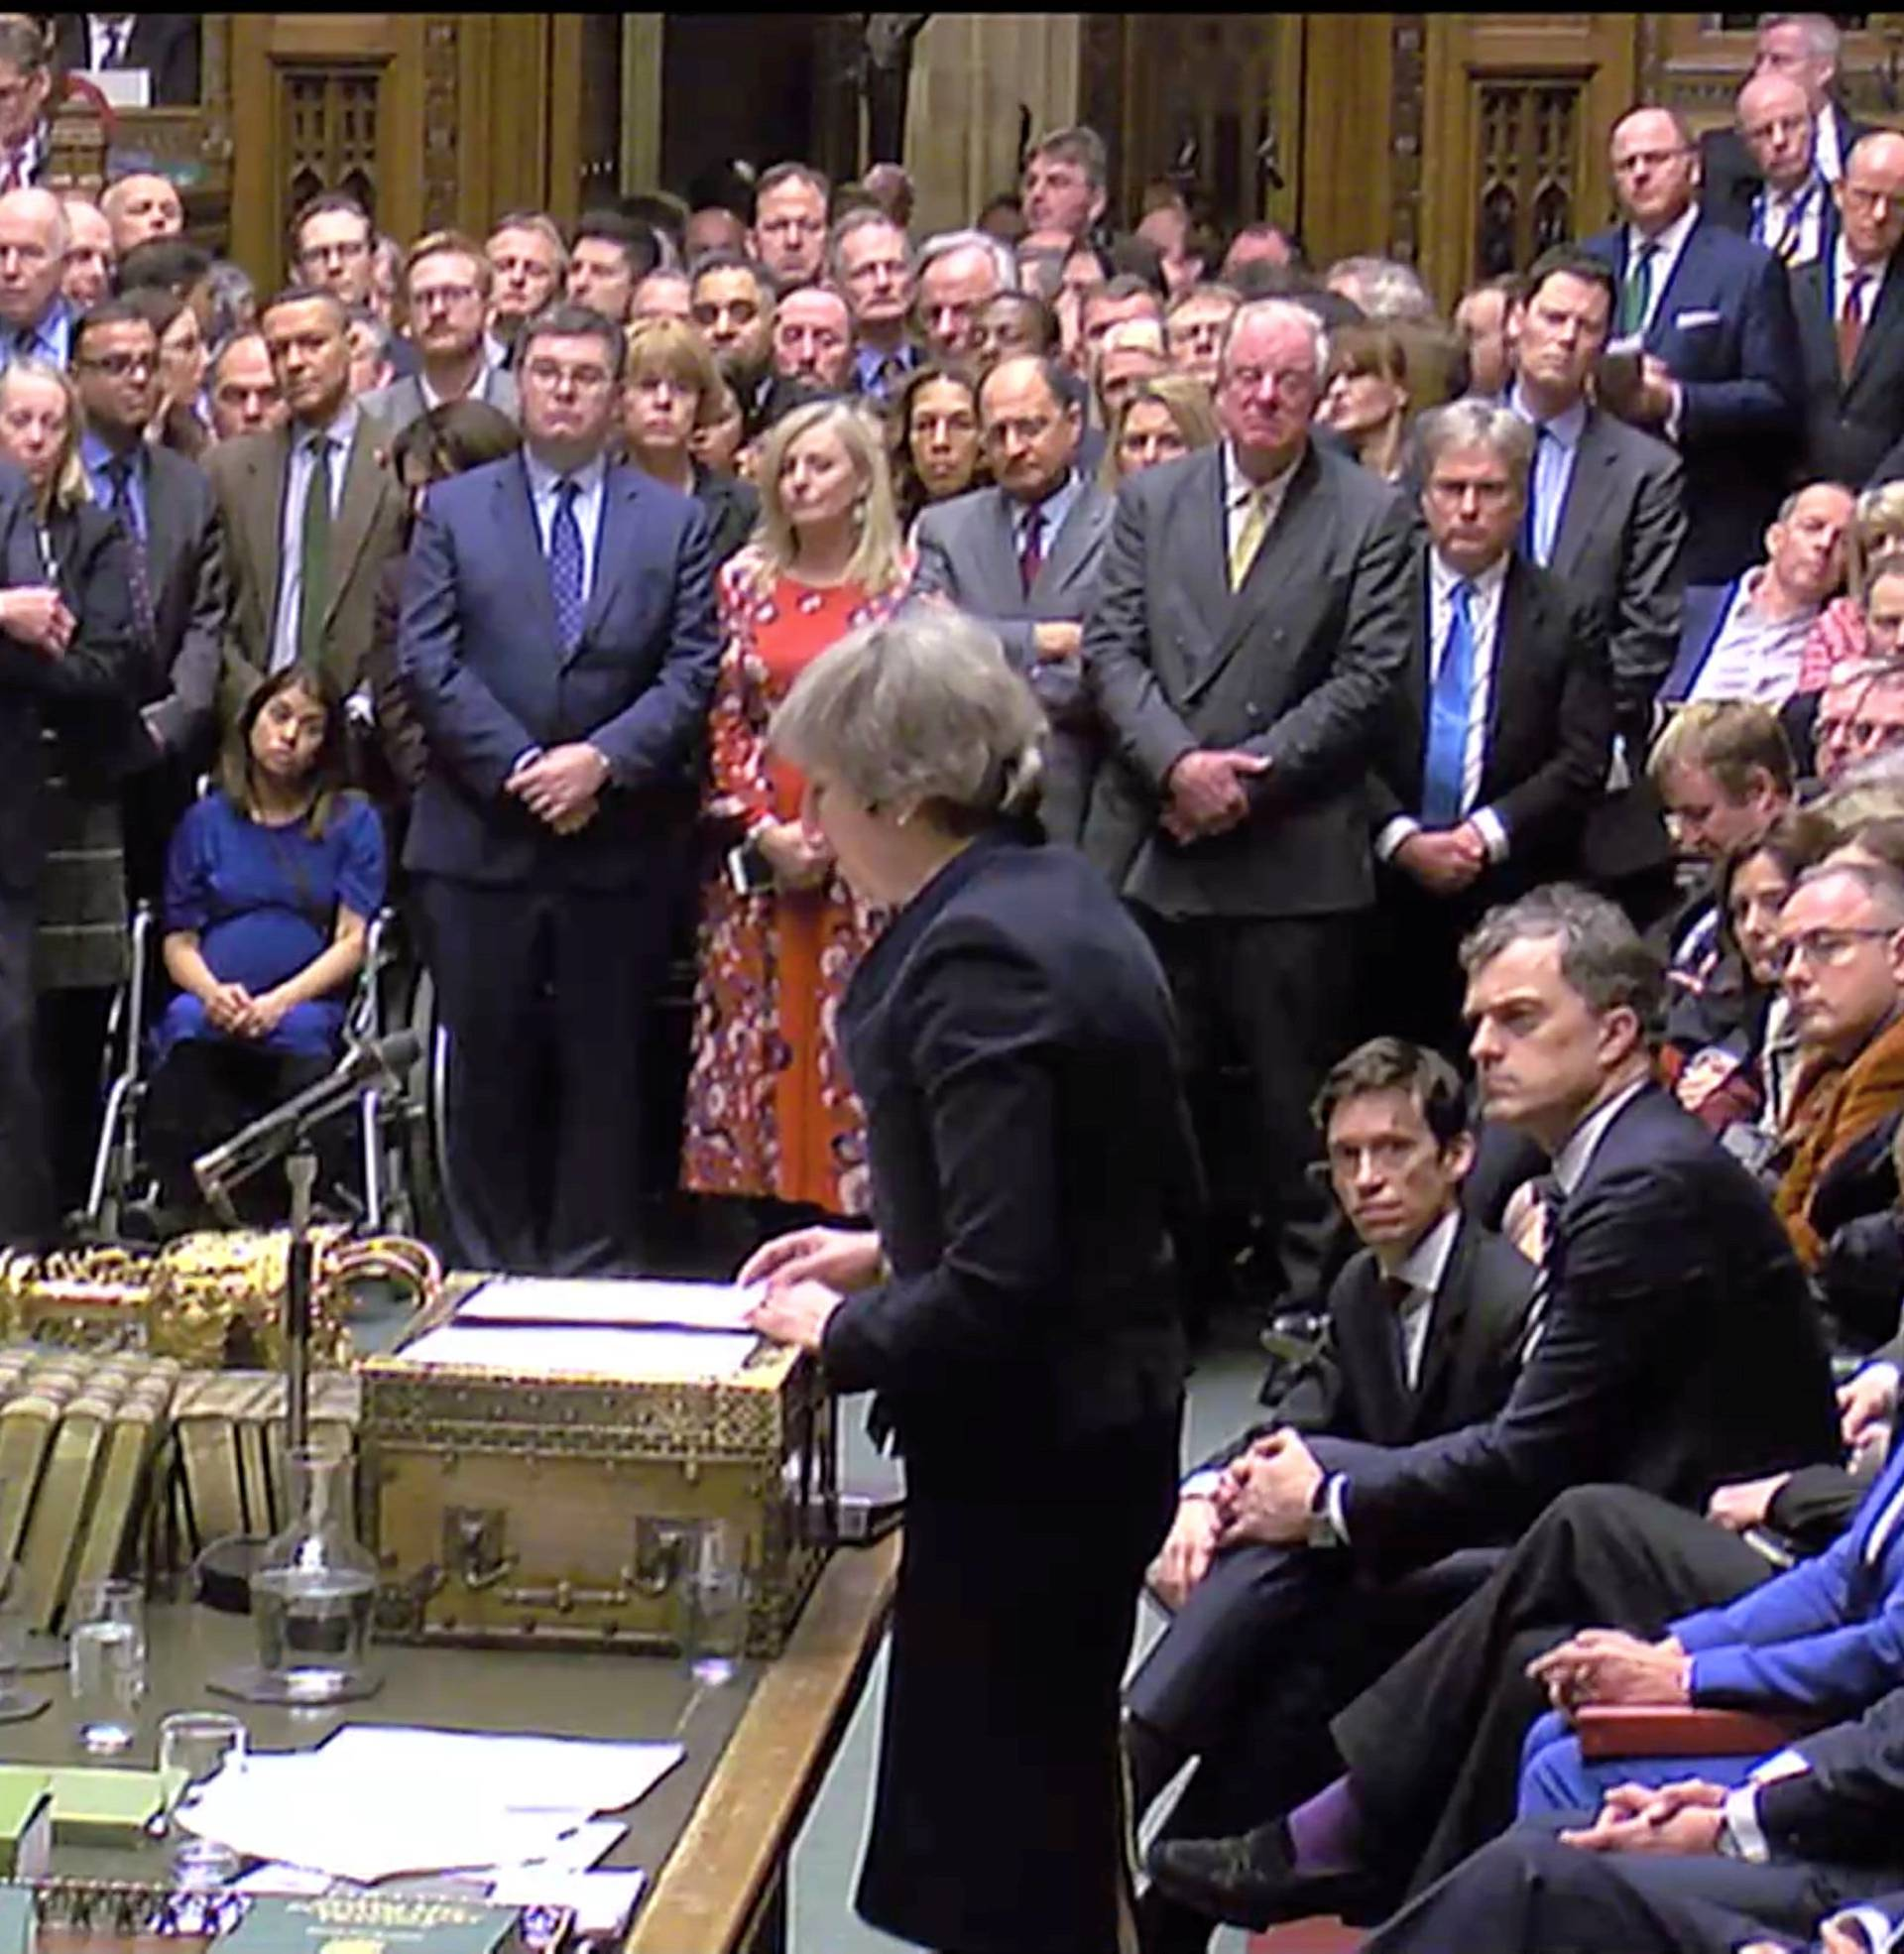 Prime Minister Theresa May addresses Parliament after the vote on May's Brexit deal, in London